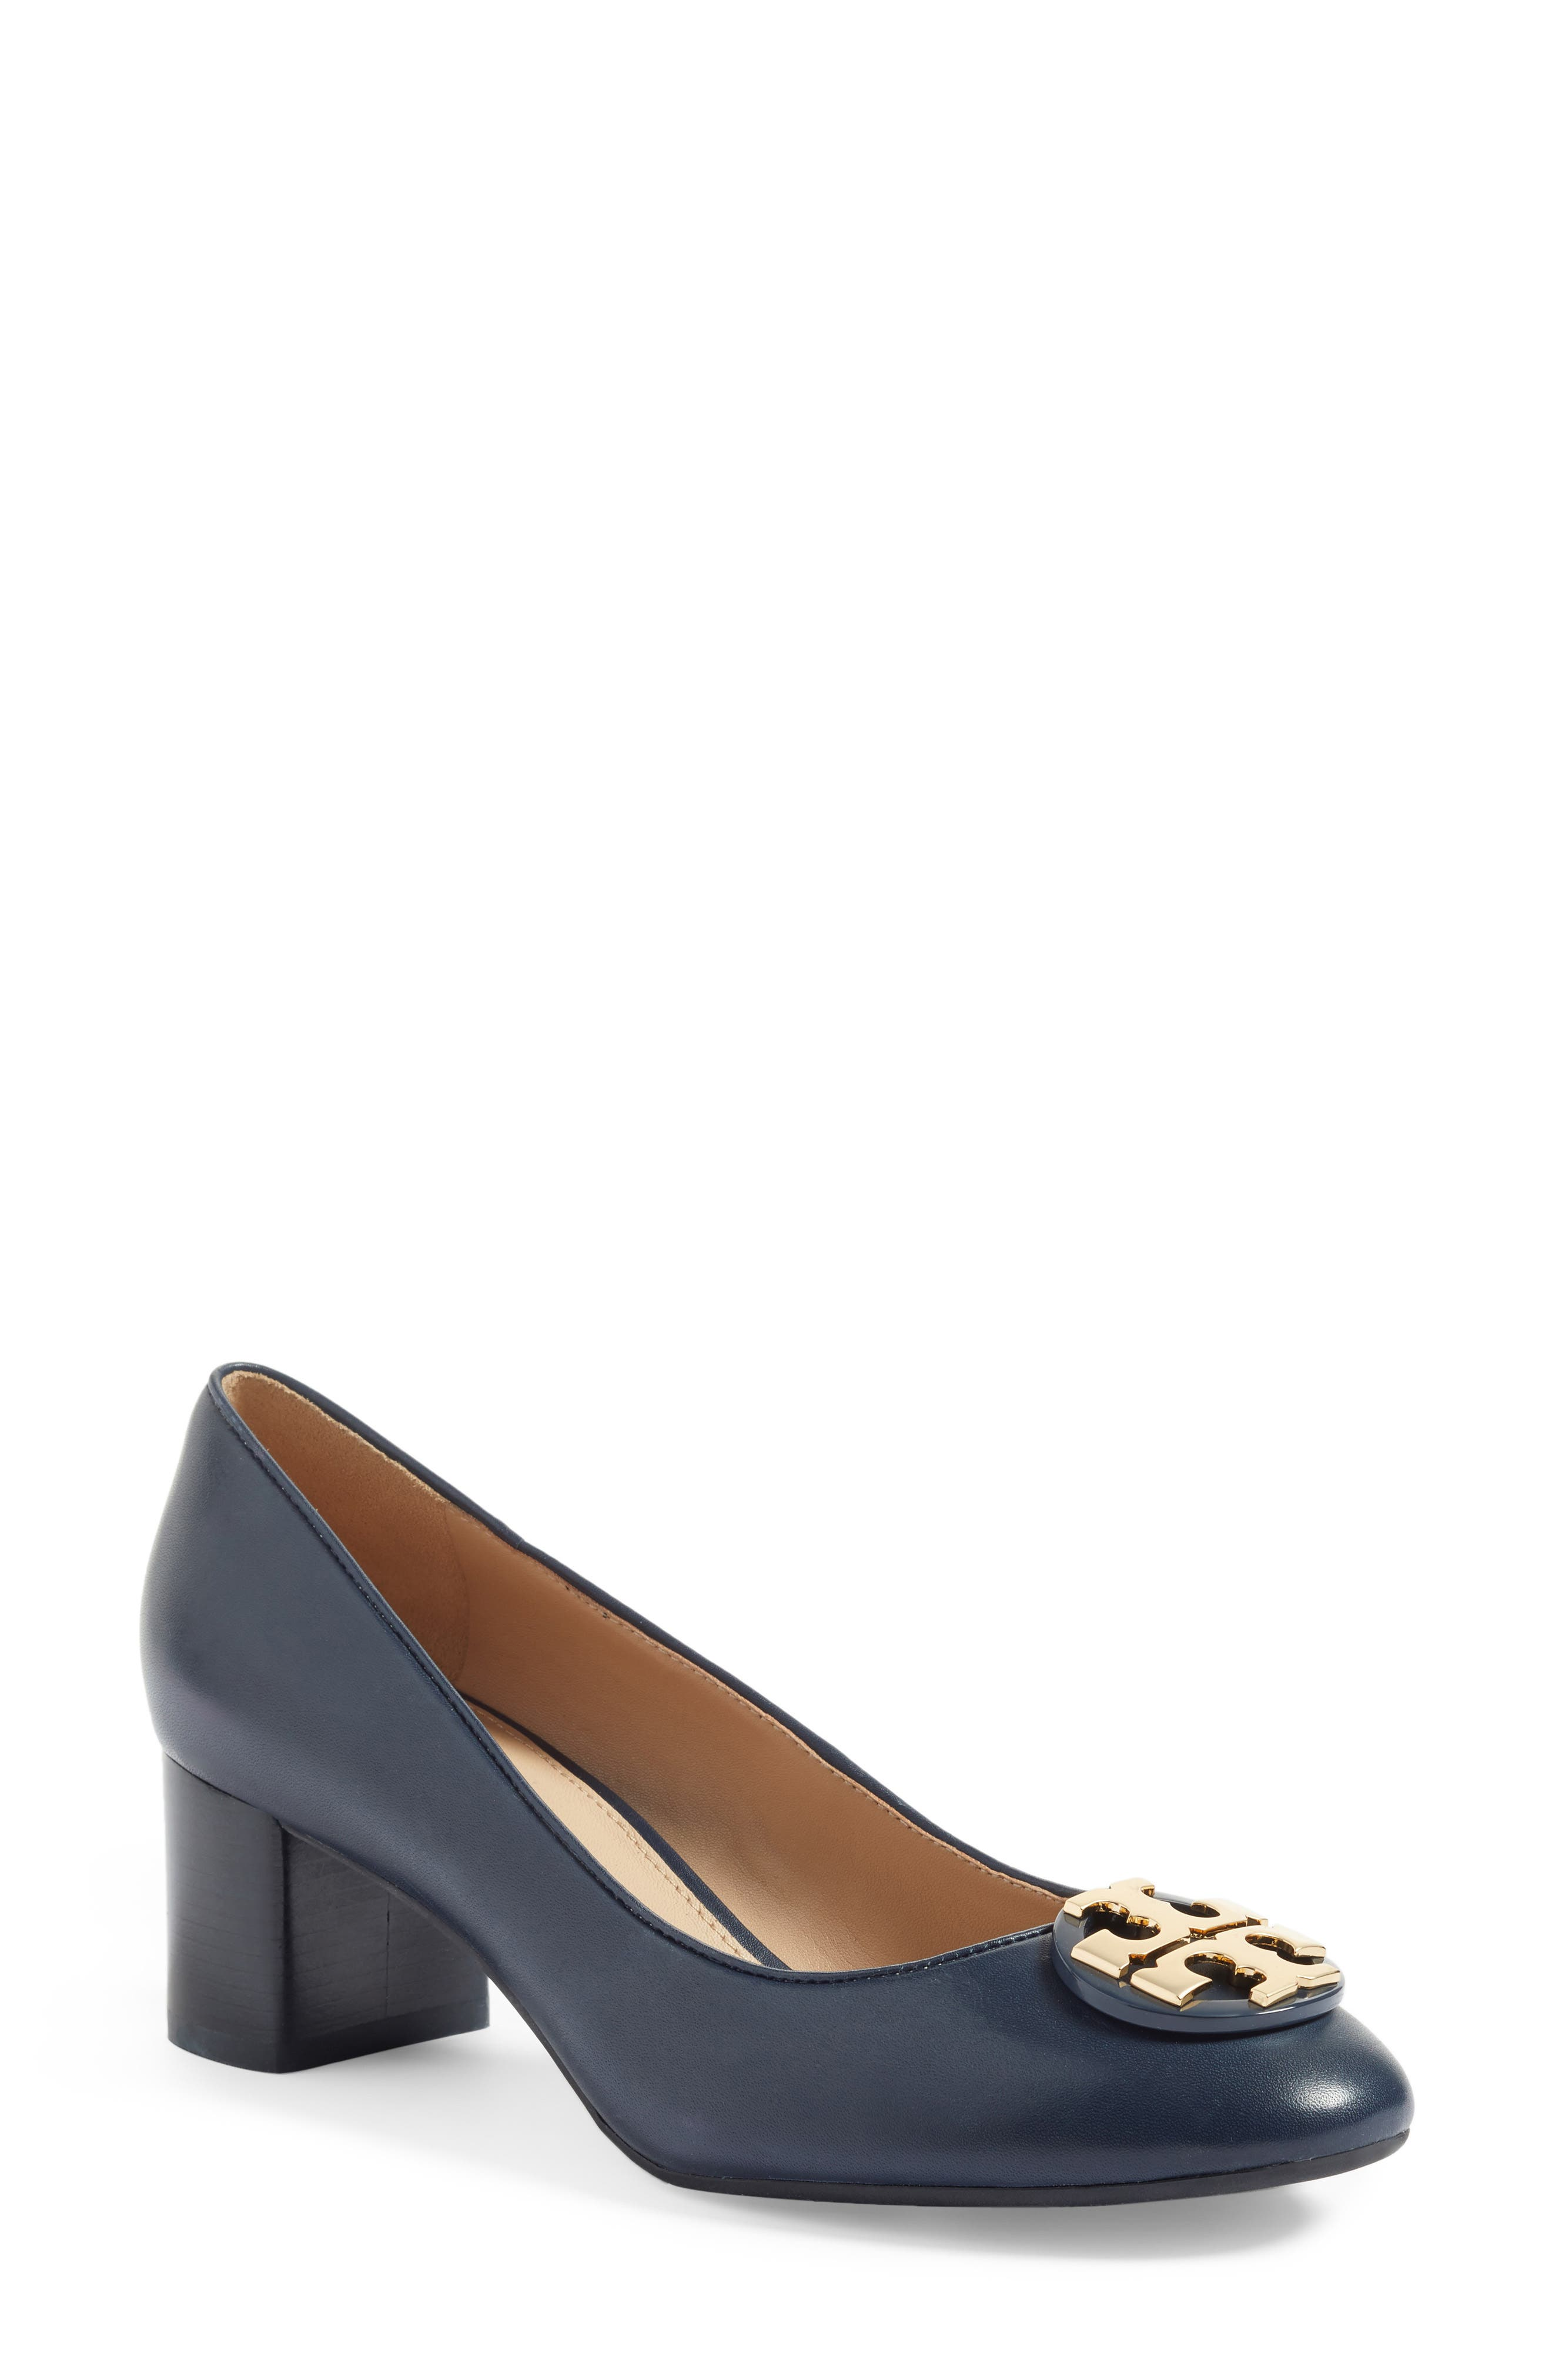 Alternate Image 1 Selected - Tory Burch Janey Pump (Women)